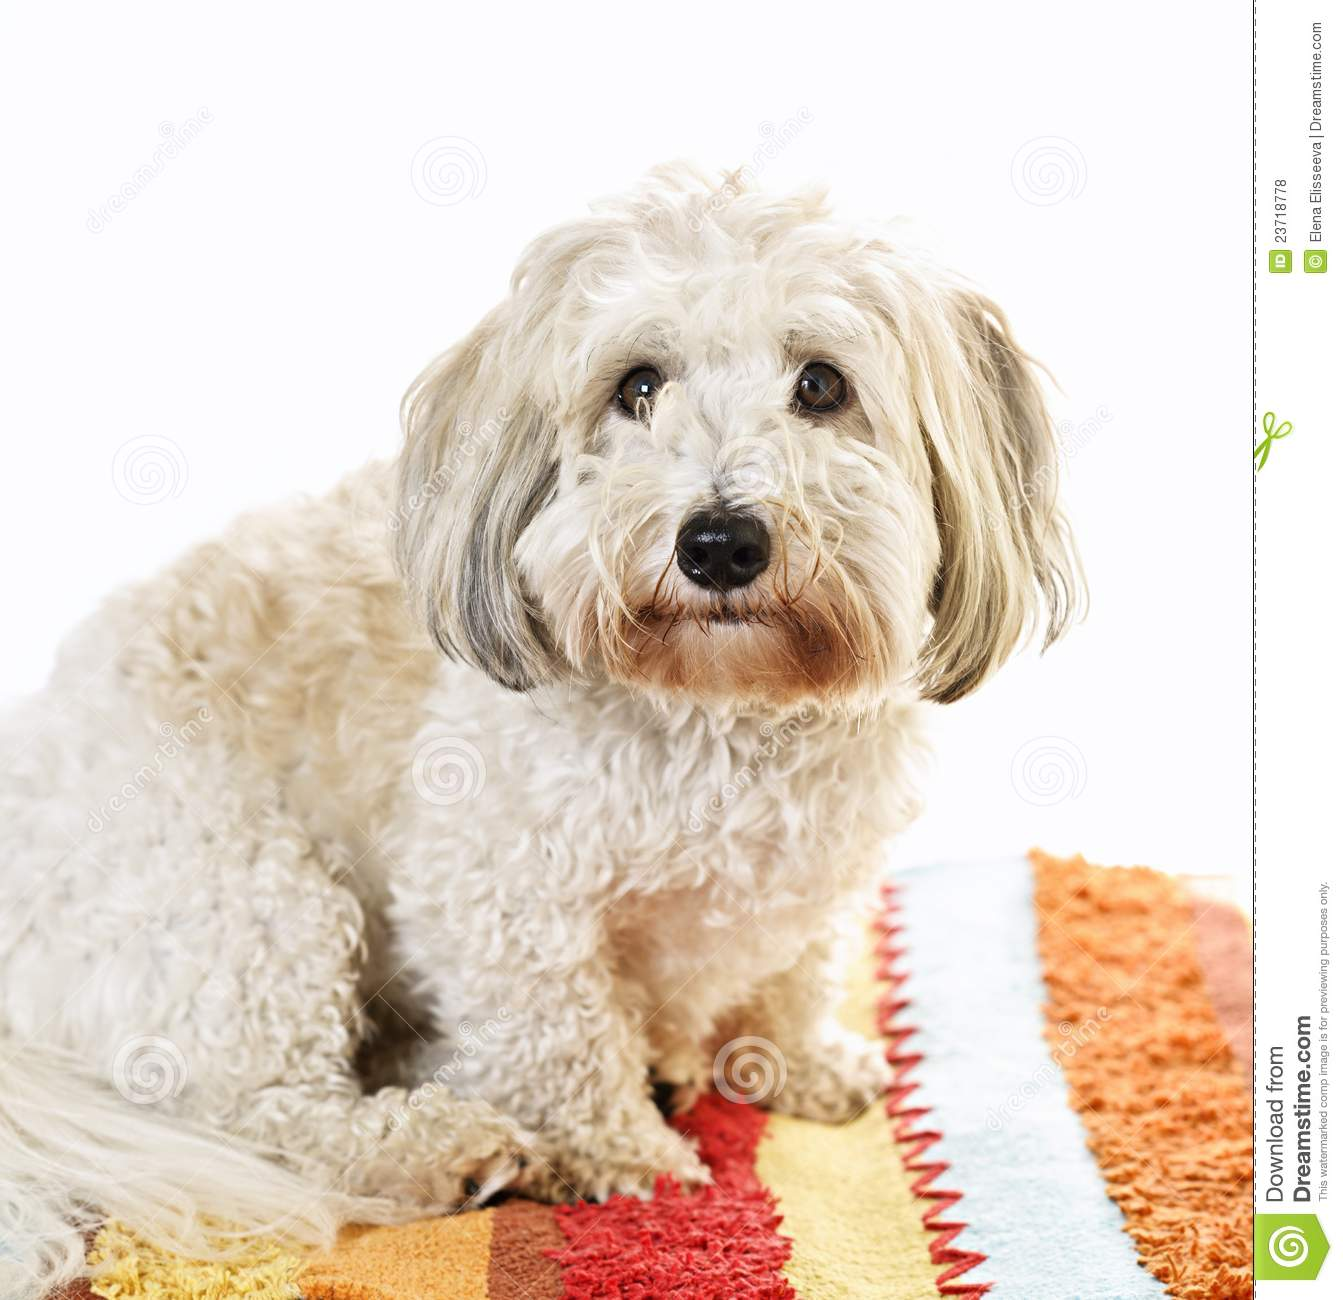 Dog Ate Some Rug: Cute Dog On Carpet Royalty Free Stock Photos